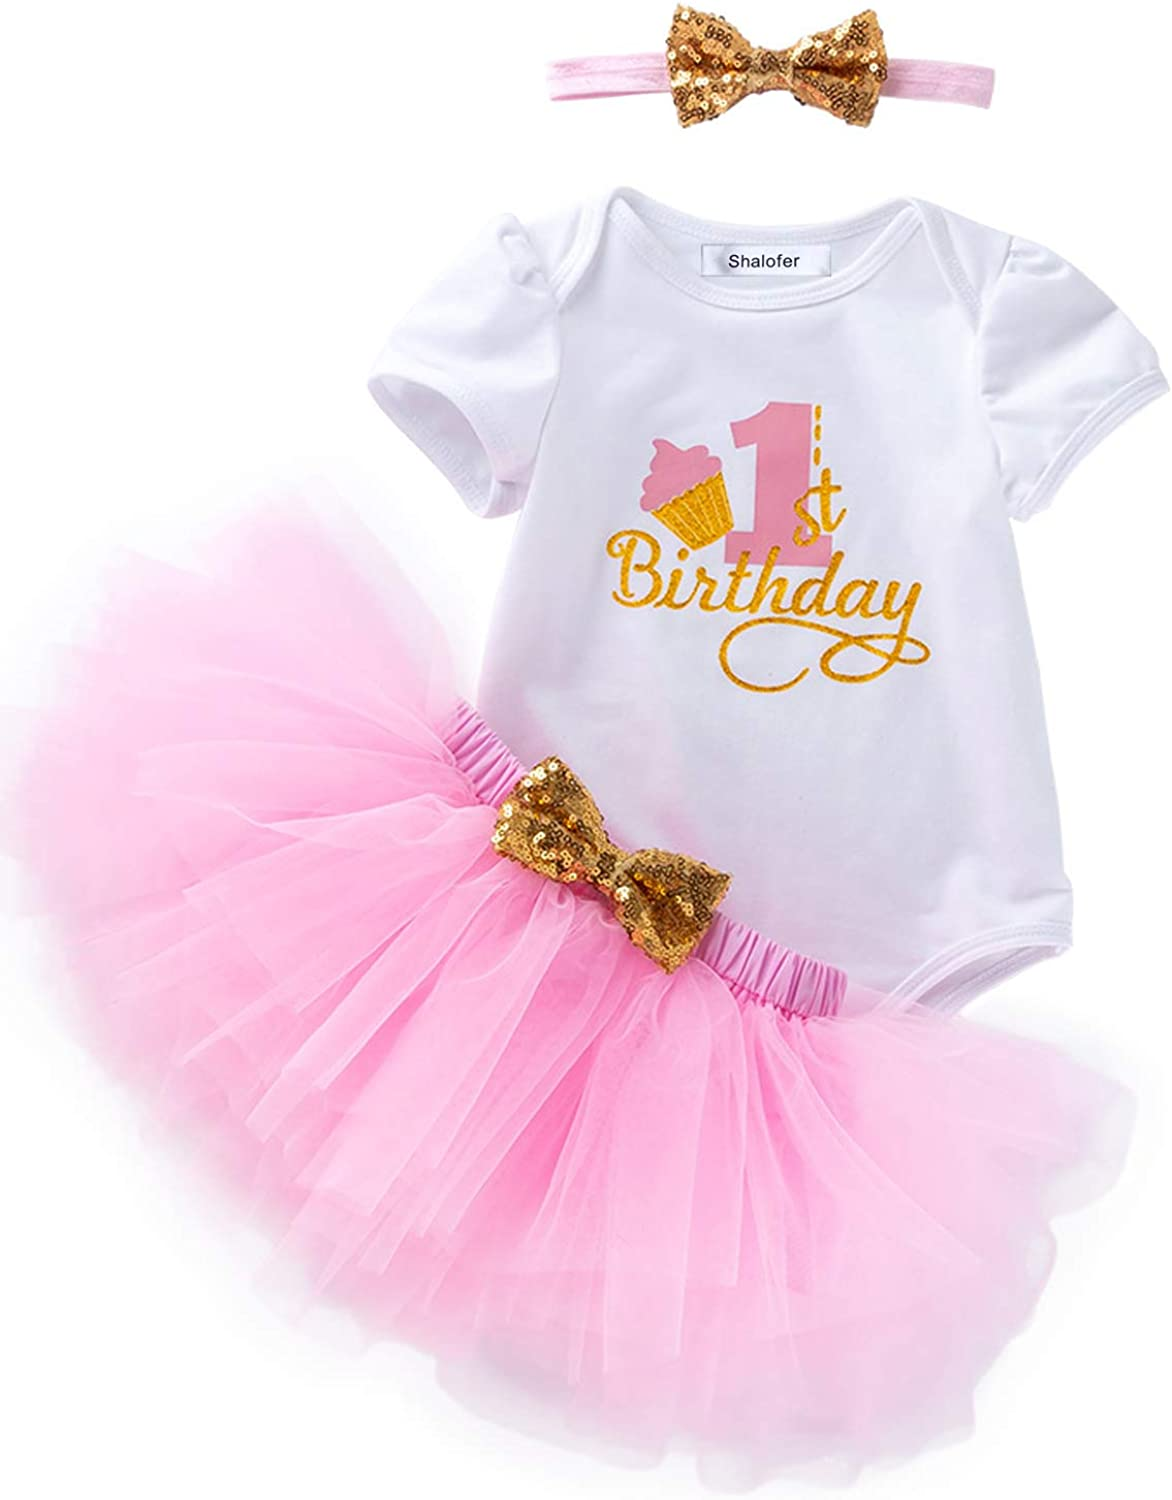 7Pcs Outfit Set Baby Girls One Year Old Birthday Lace Tutu Bodysuit Skirt  with Headband